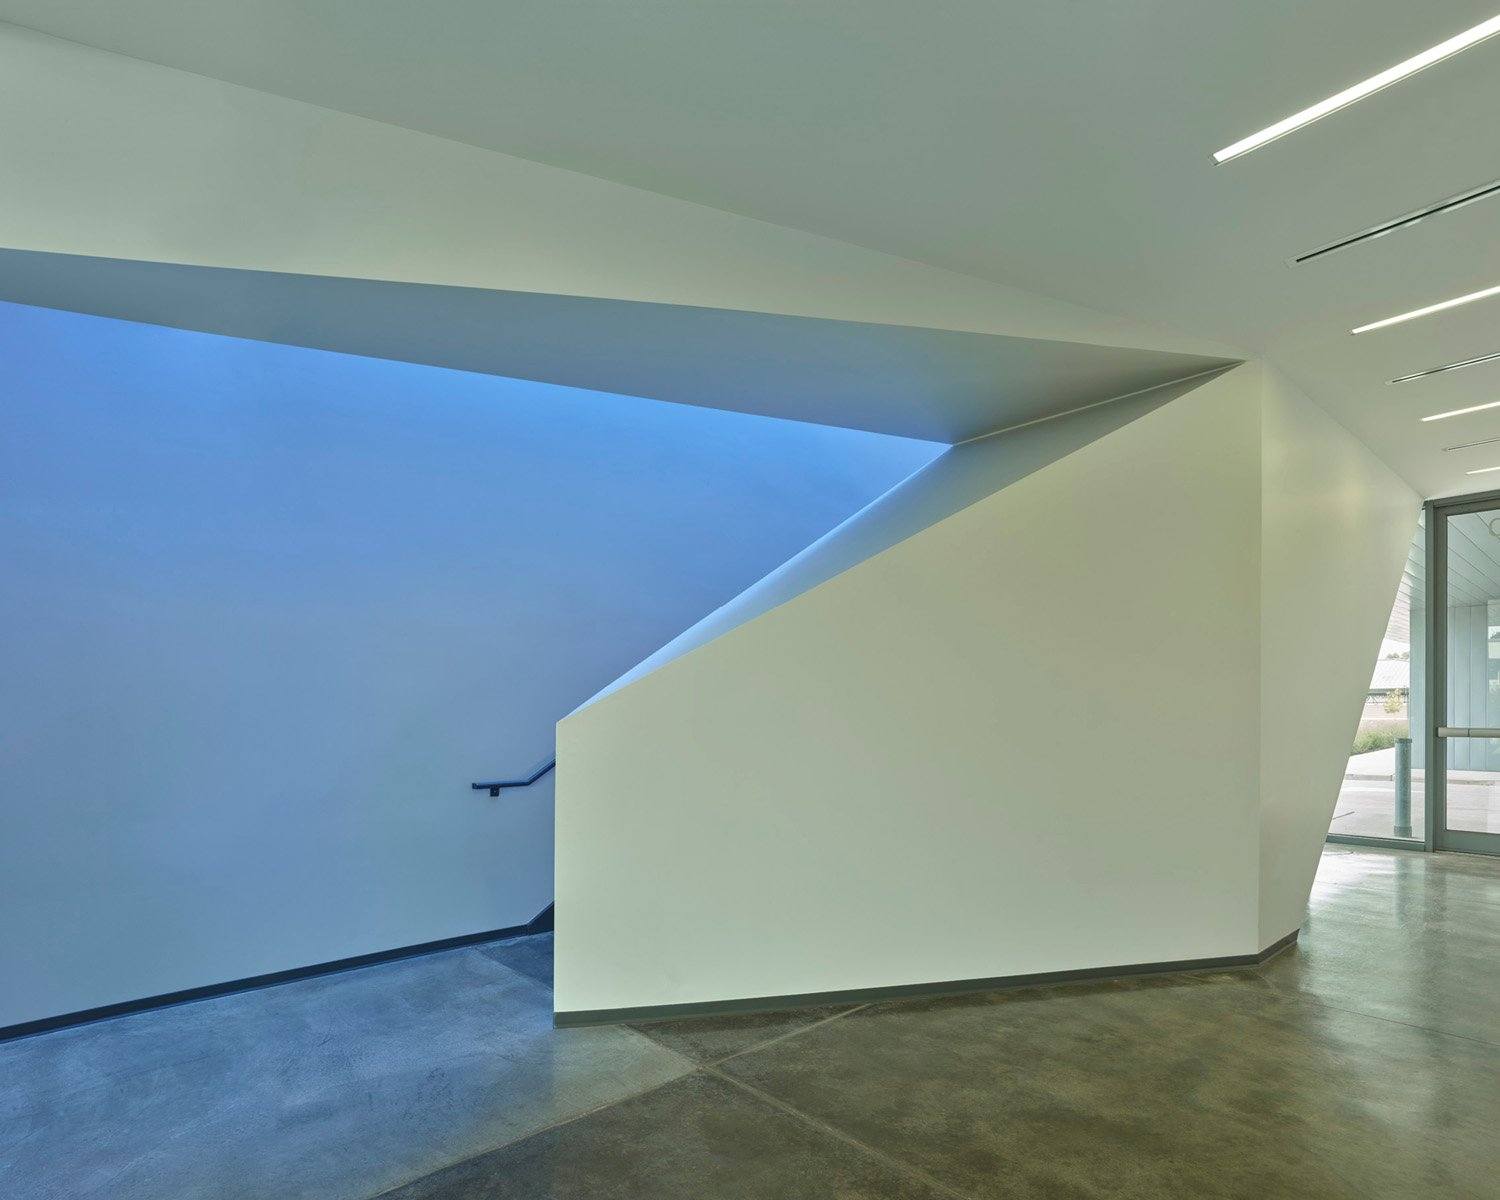 The Clinic Stair is a threshold to the spaces of healing and comfort above